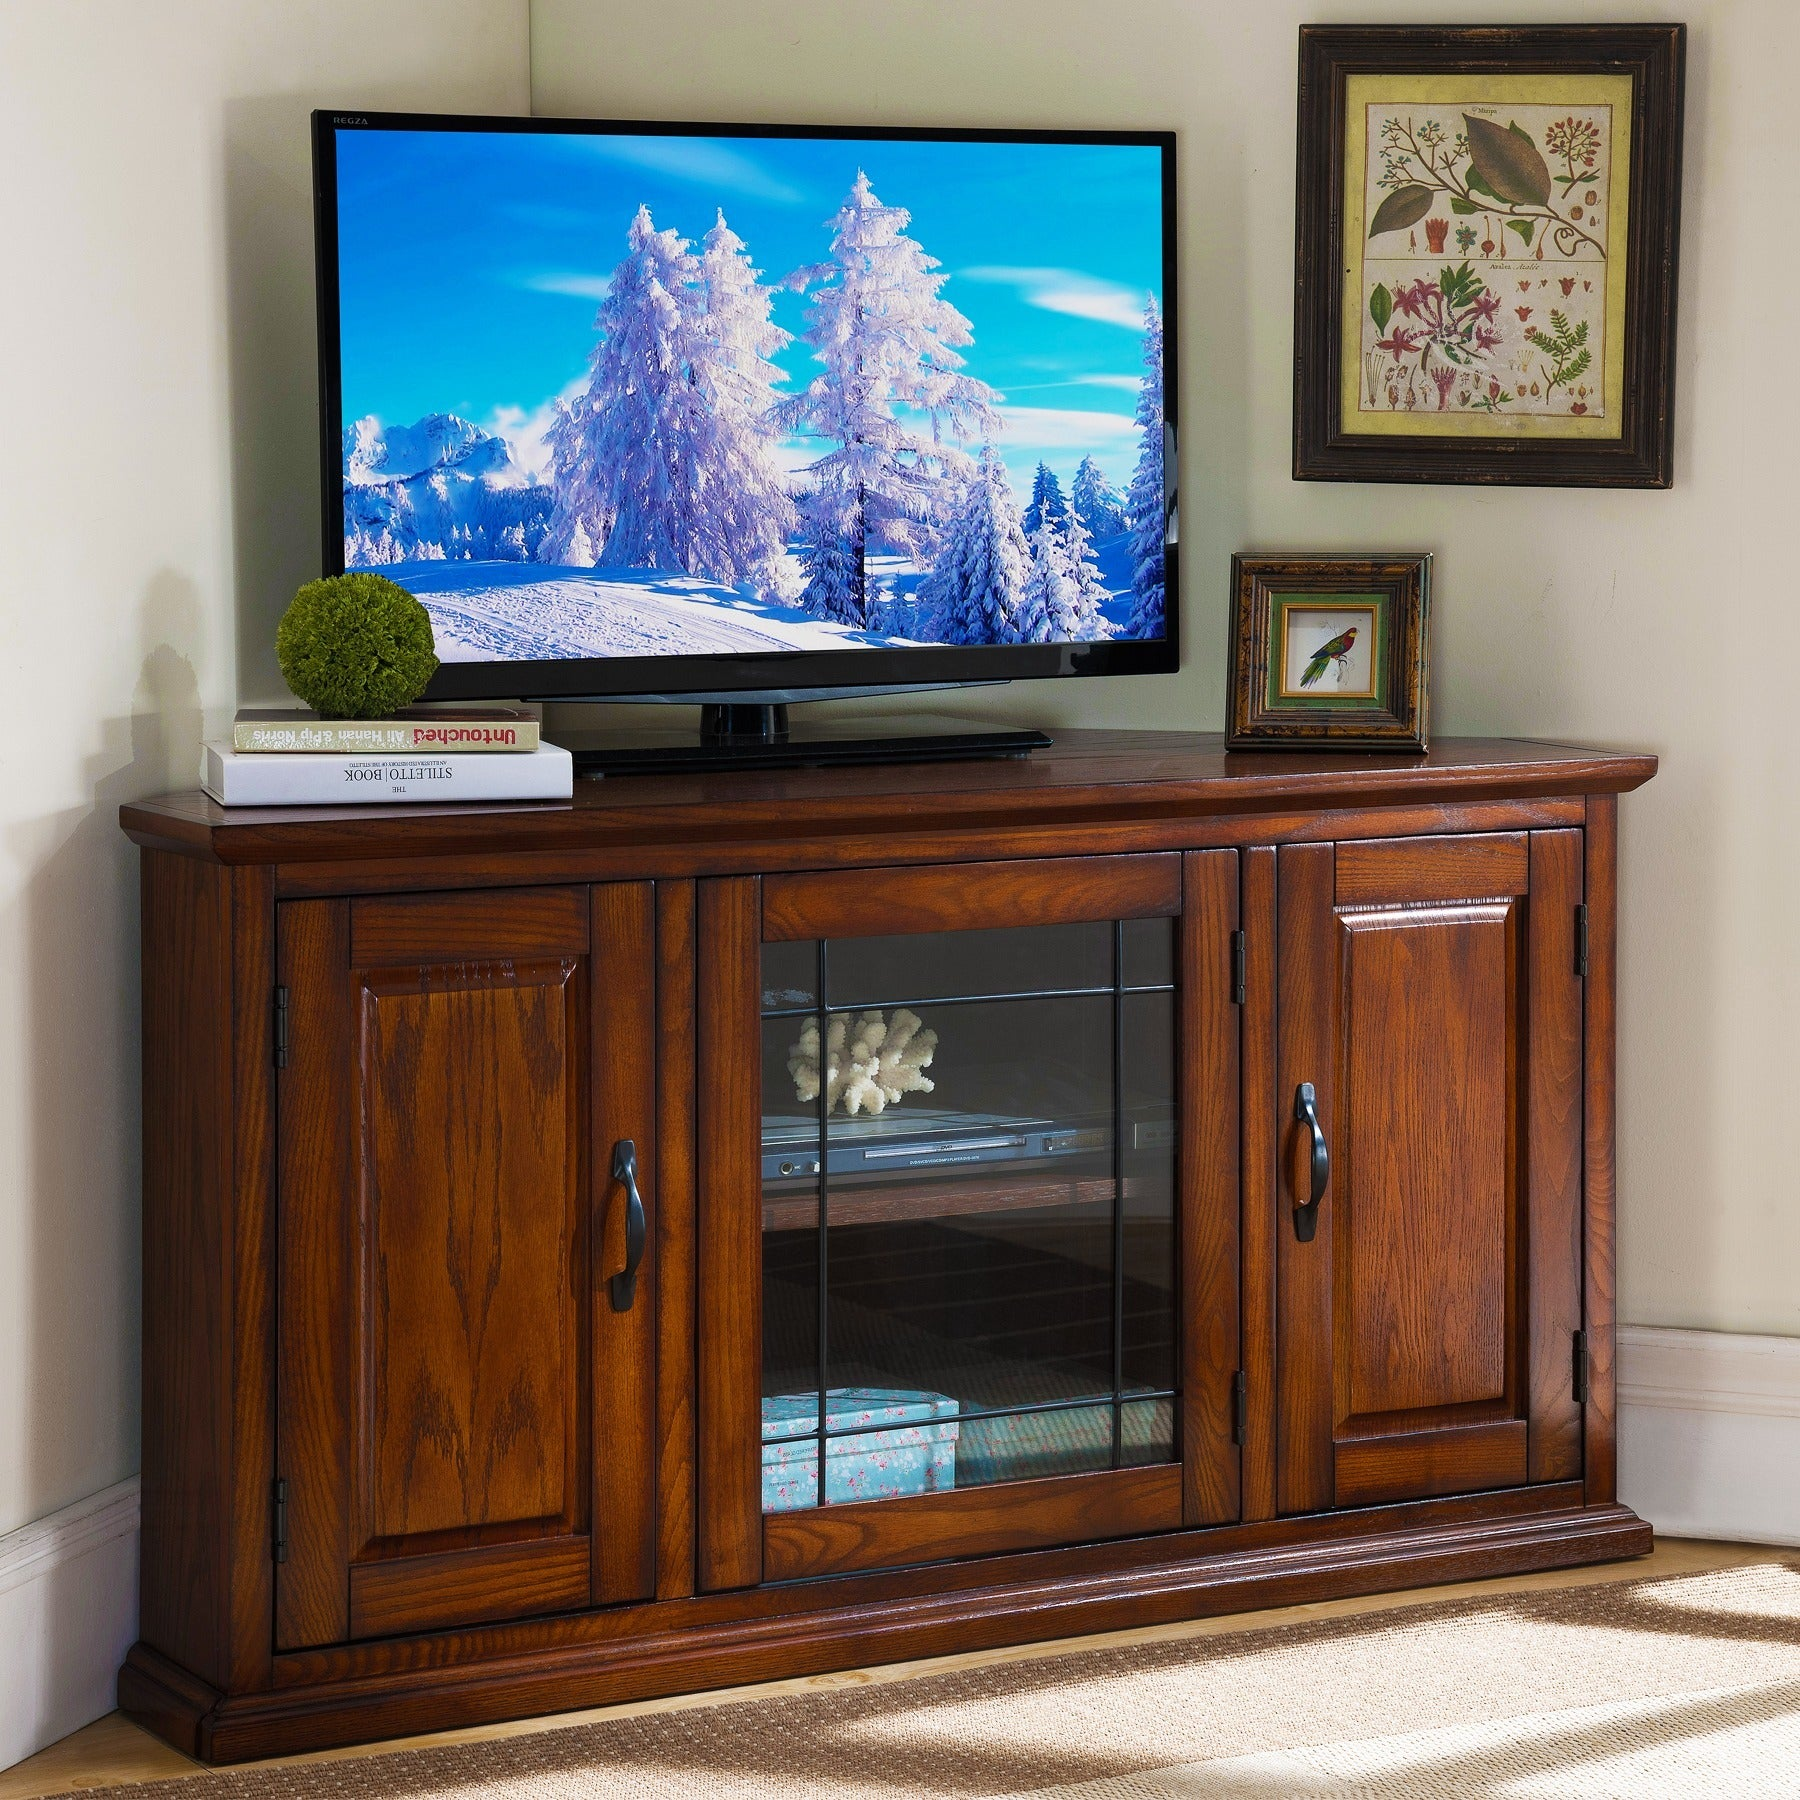 shop burnished oak 50 inch tv stand and media corner console free shipping today overstockcom 6483863 - Corner Tv Stands 50 Inch